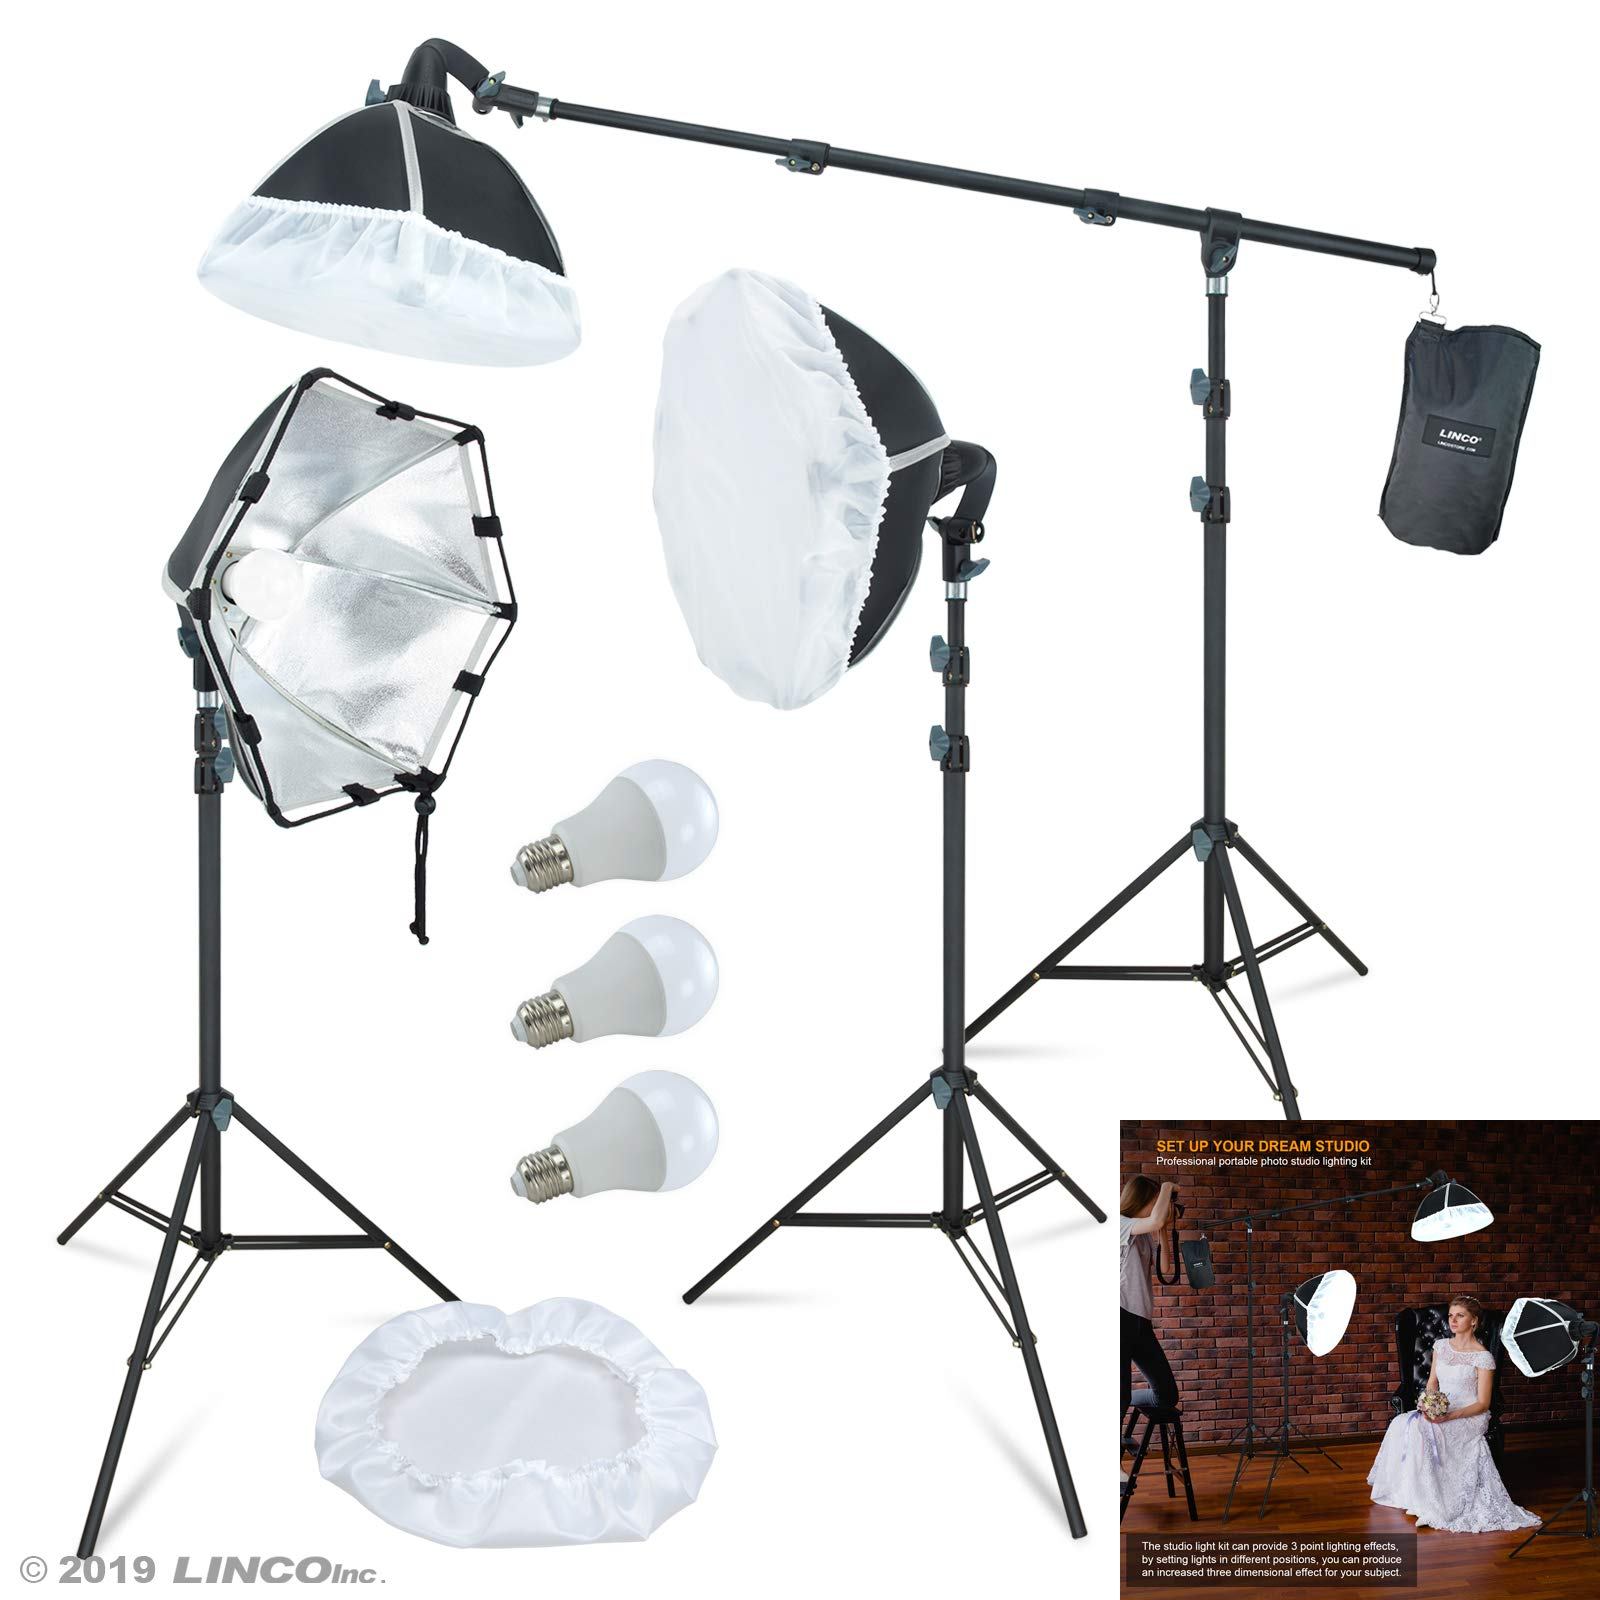 LINCO Lincostore Photography Studio Lighting Kit Arm for Video Continuous Lighting Shadow Boom Box Lights Set Headlight Softbox Setup with Daylight Bulbs 2400 Lumens AM261 by Linco (Image #1)